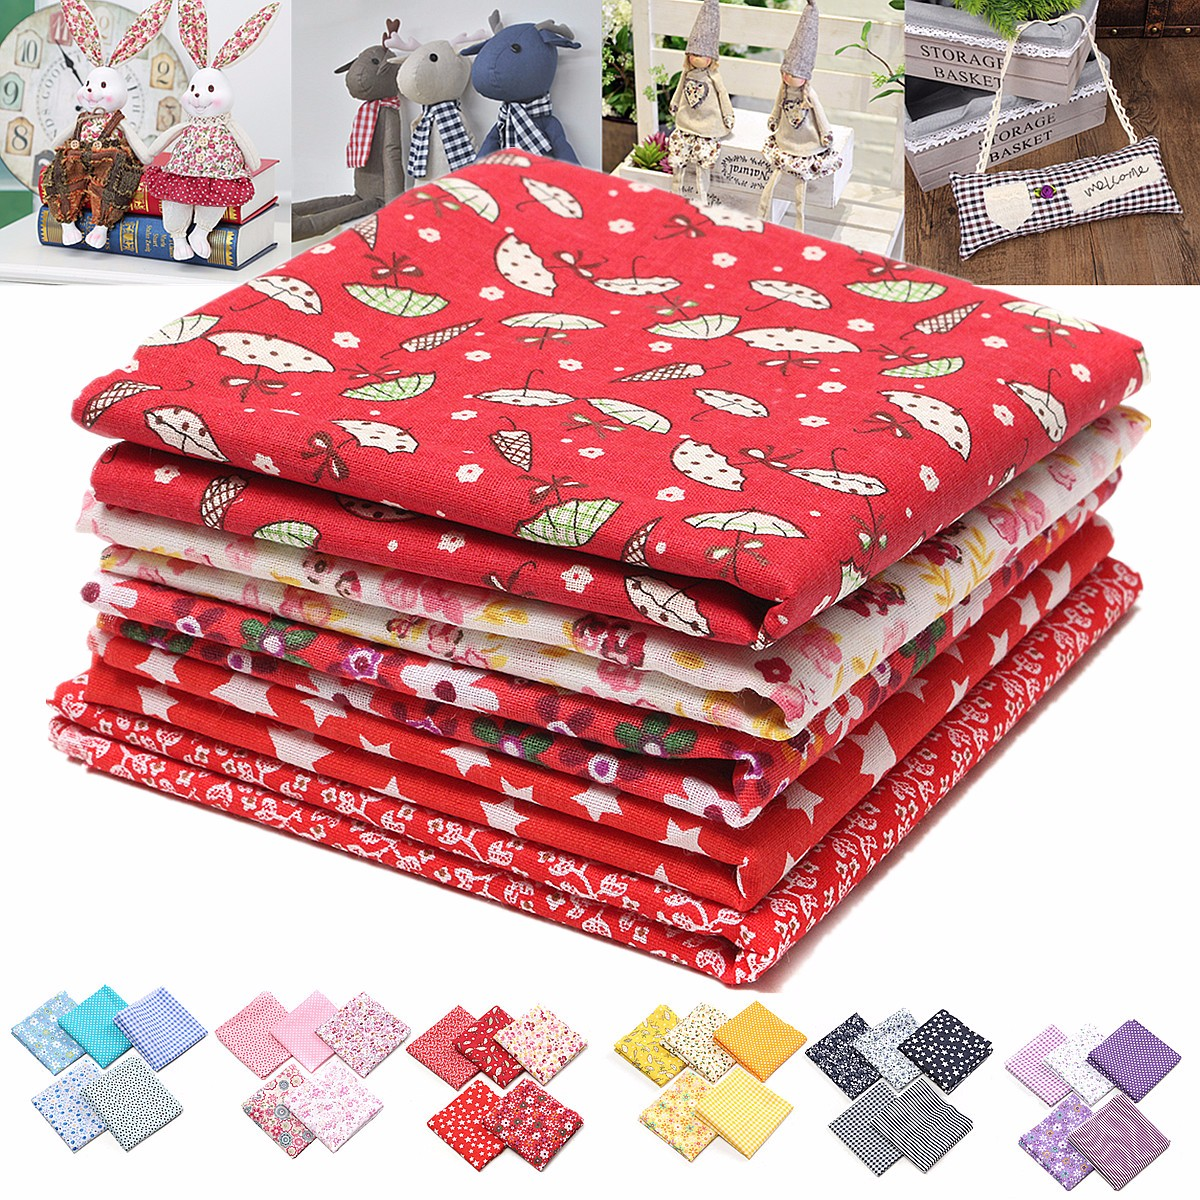 5Pcs 19.69x19.69'' Squares DIY Multicolor Assorted Mixed Pattern Cotton Fabric Sewing Quilting Hand Stitching Patchwork DIY Craft Can Make Christmas Decor